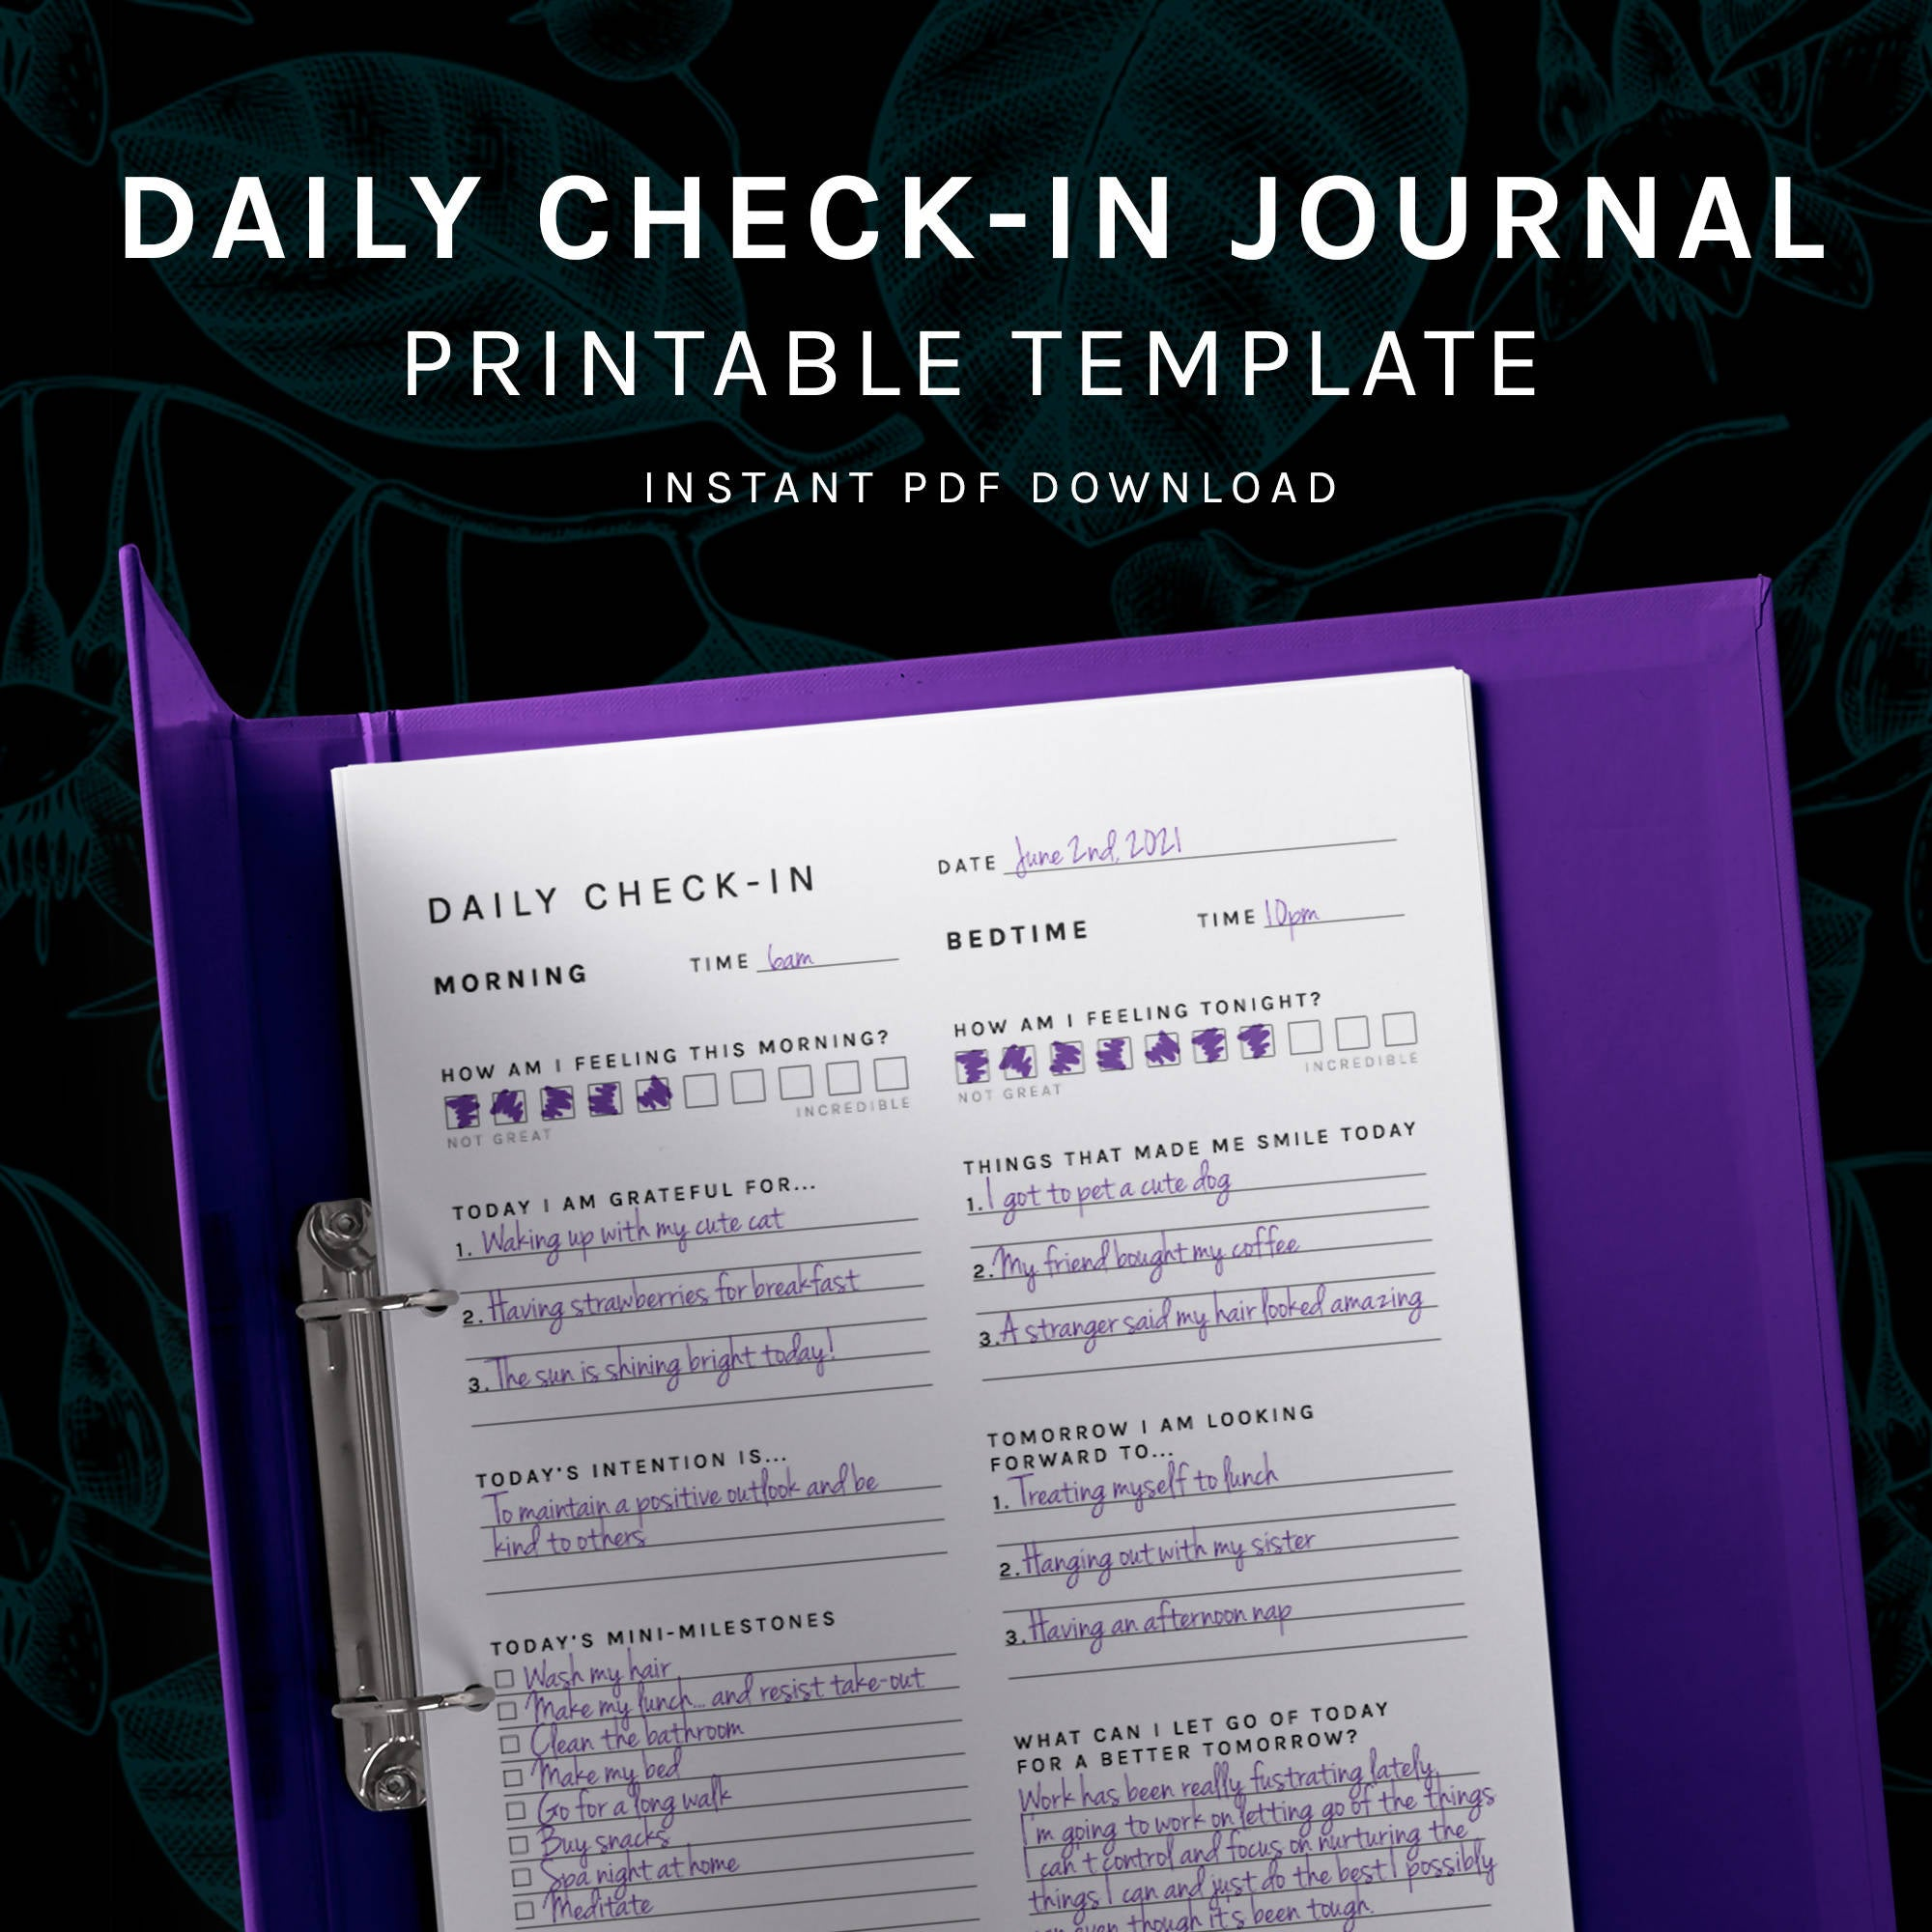 Positivity and Gratitude Daily Check-in Journal Page - PDF Printable Template